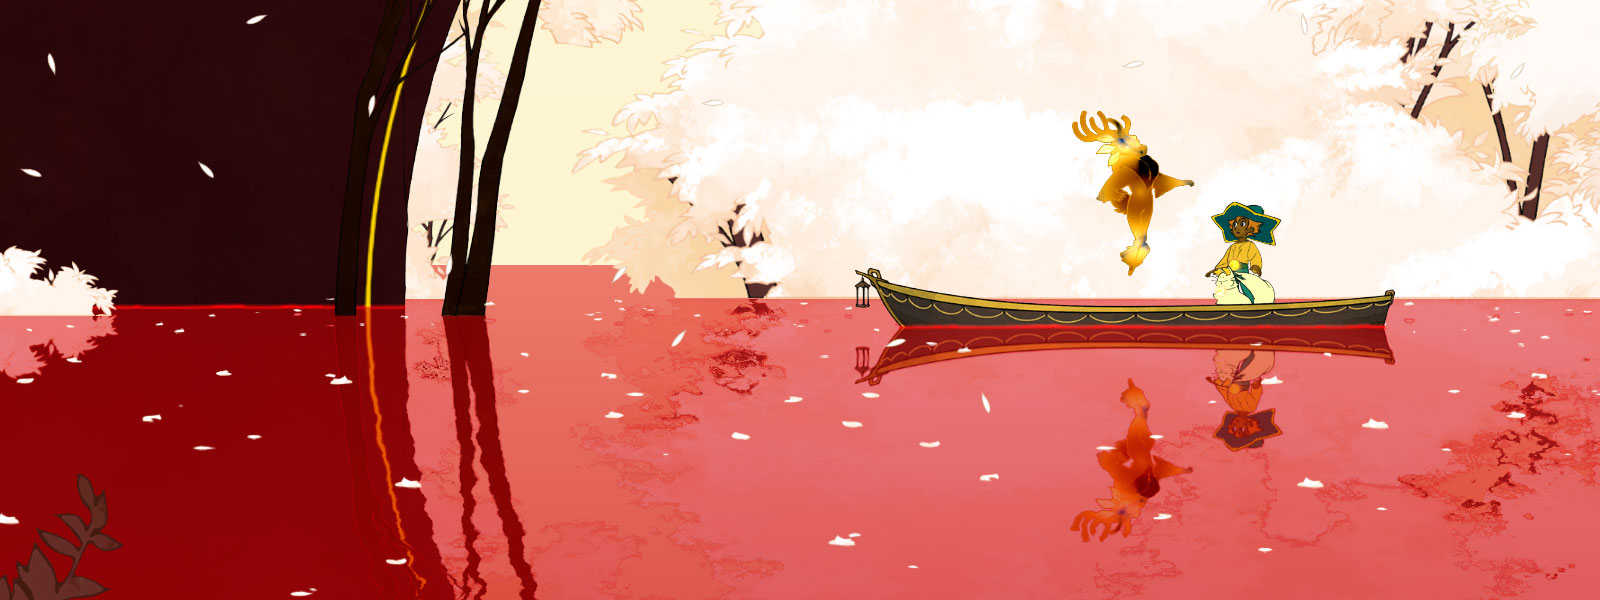 Two characters on a boat with one floating, pink water and white trees and leaves